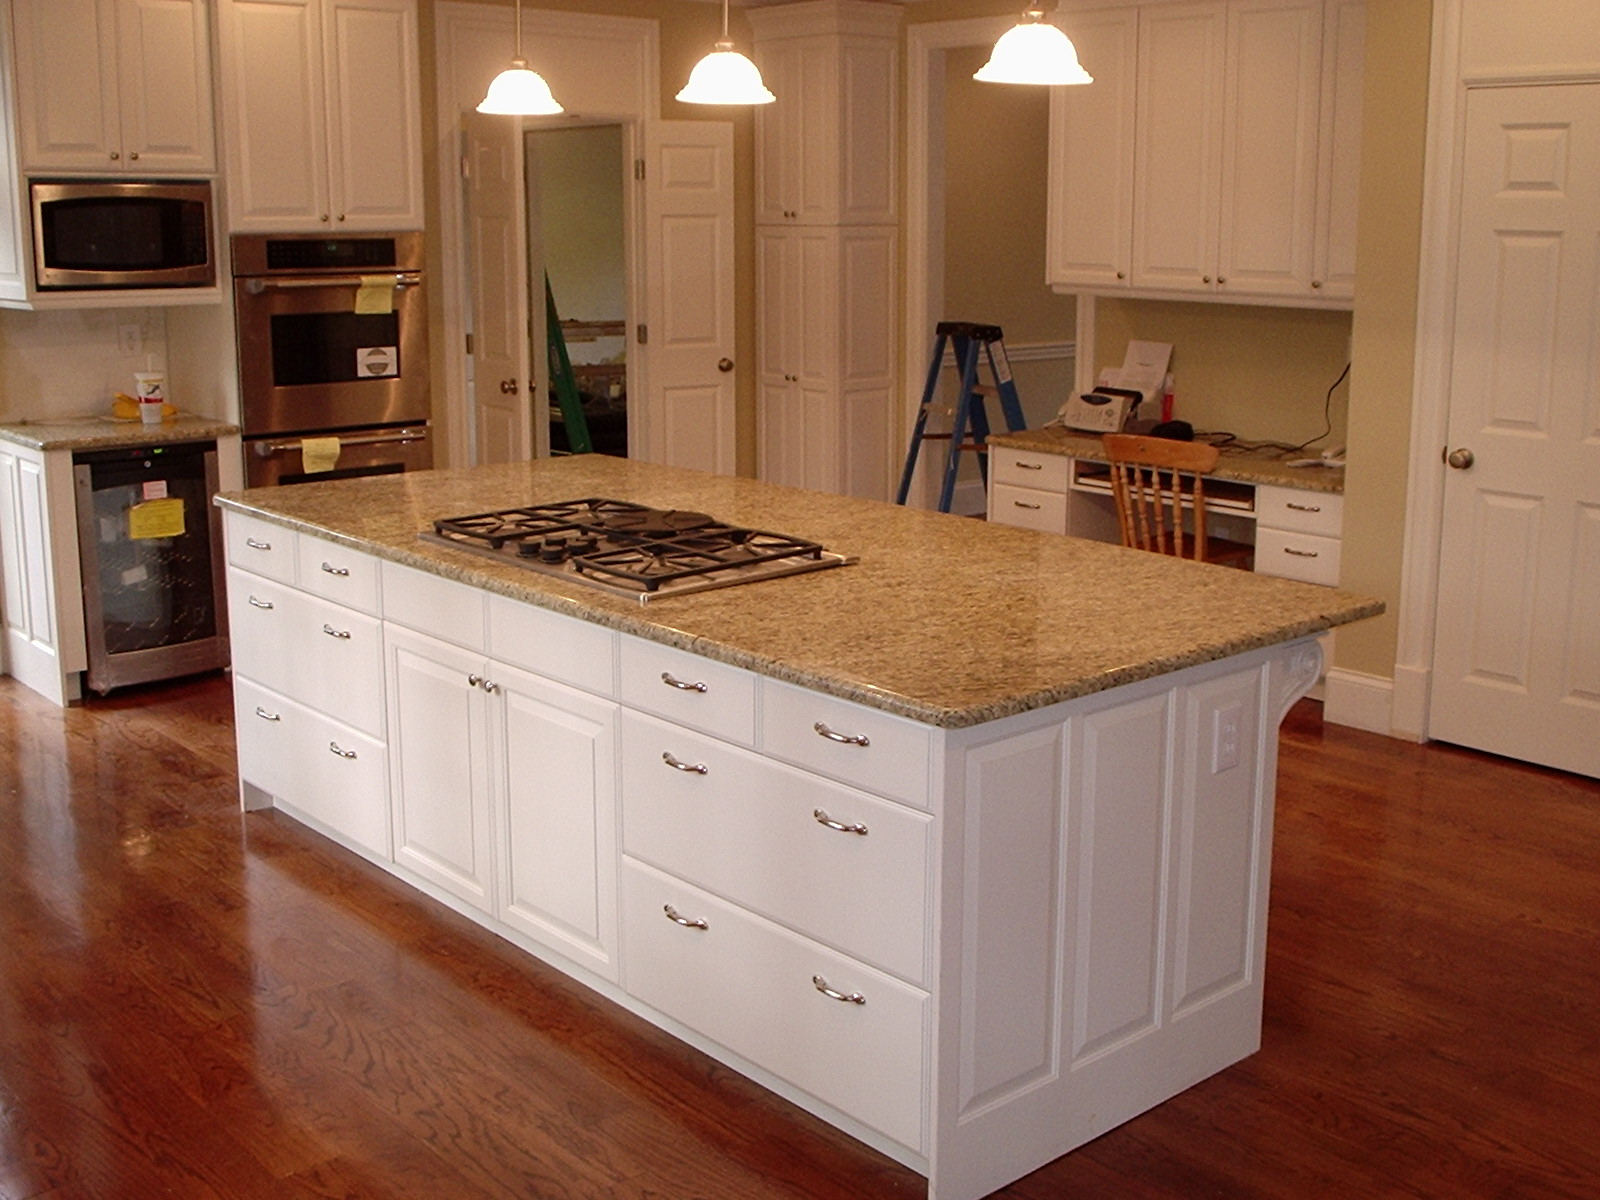 Kitchen Cabinet Plans Butcher Block Tables Dream House Experience